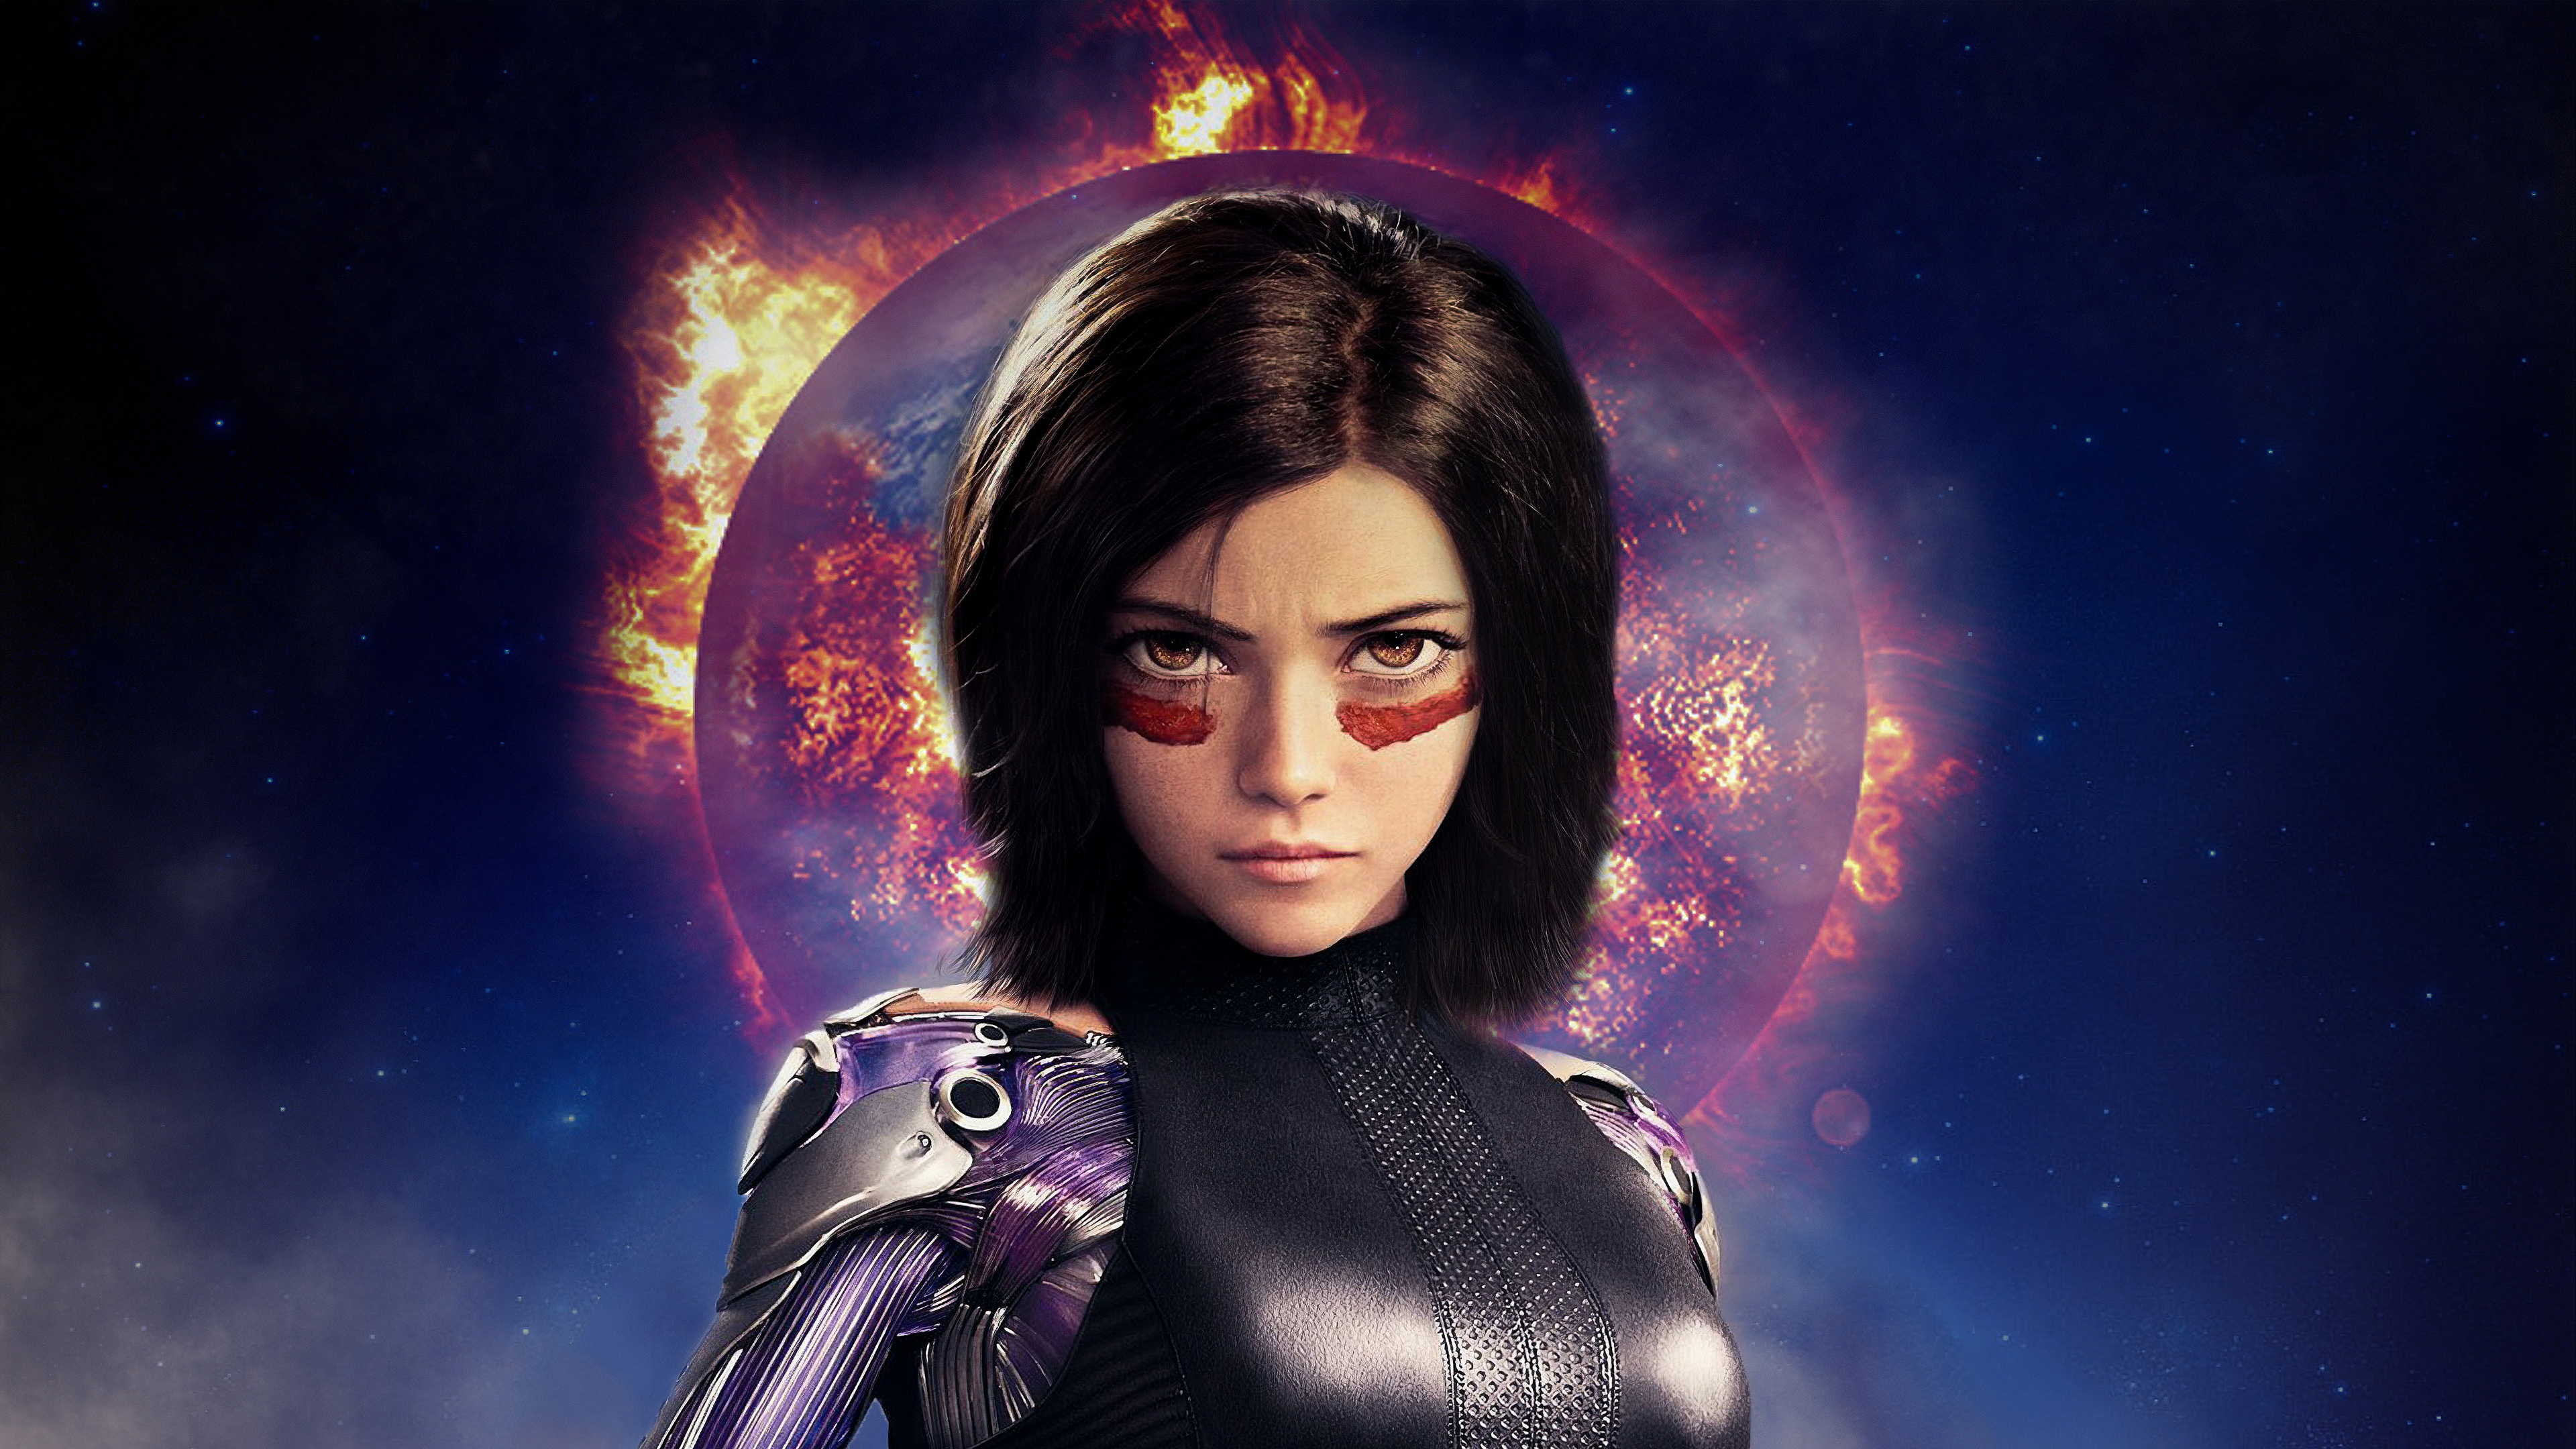 Picture Alita Battle Angel 8k Wallpapers